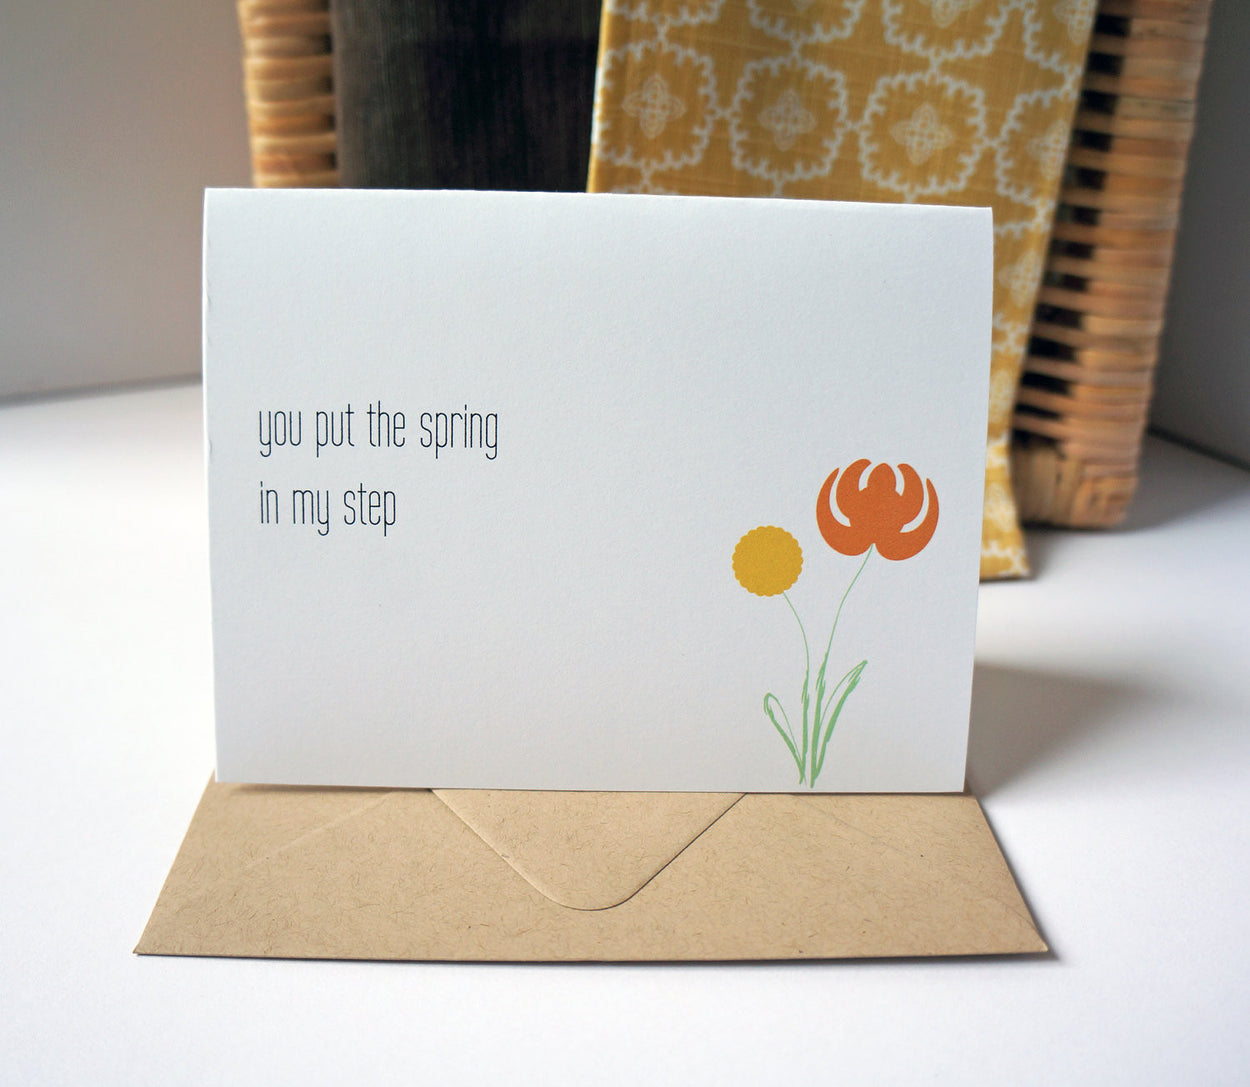 You Put the Spring in My Step Modern Greeting Card - shop greeting cards, handmade stationery, & wedding invitations by dodeline design - 2